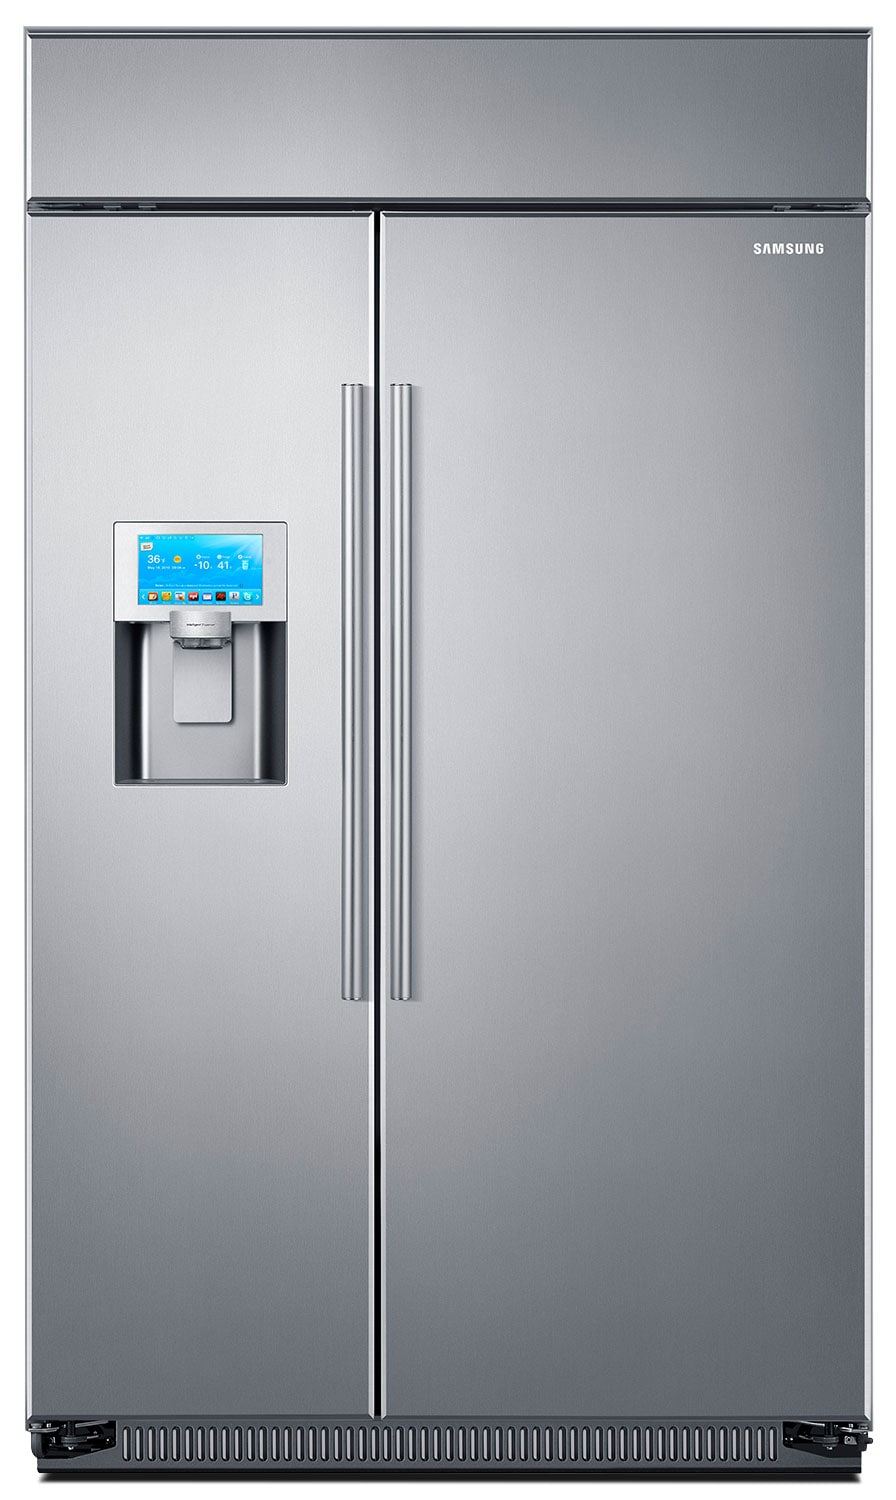 Samsung Stainless Steel Built-In Side-by-Side Refrigerator (26.5 Cu. Ft.) - RS27FDBTNSR